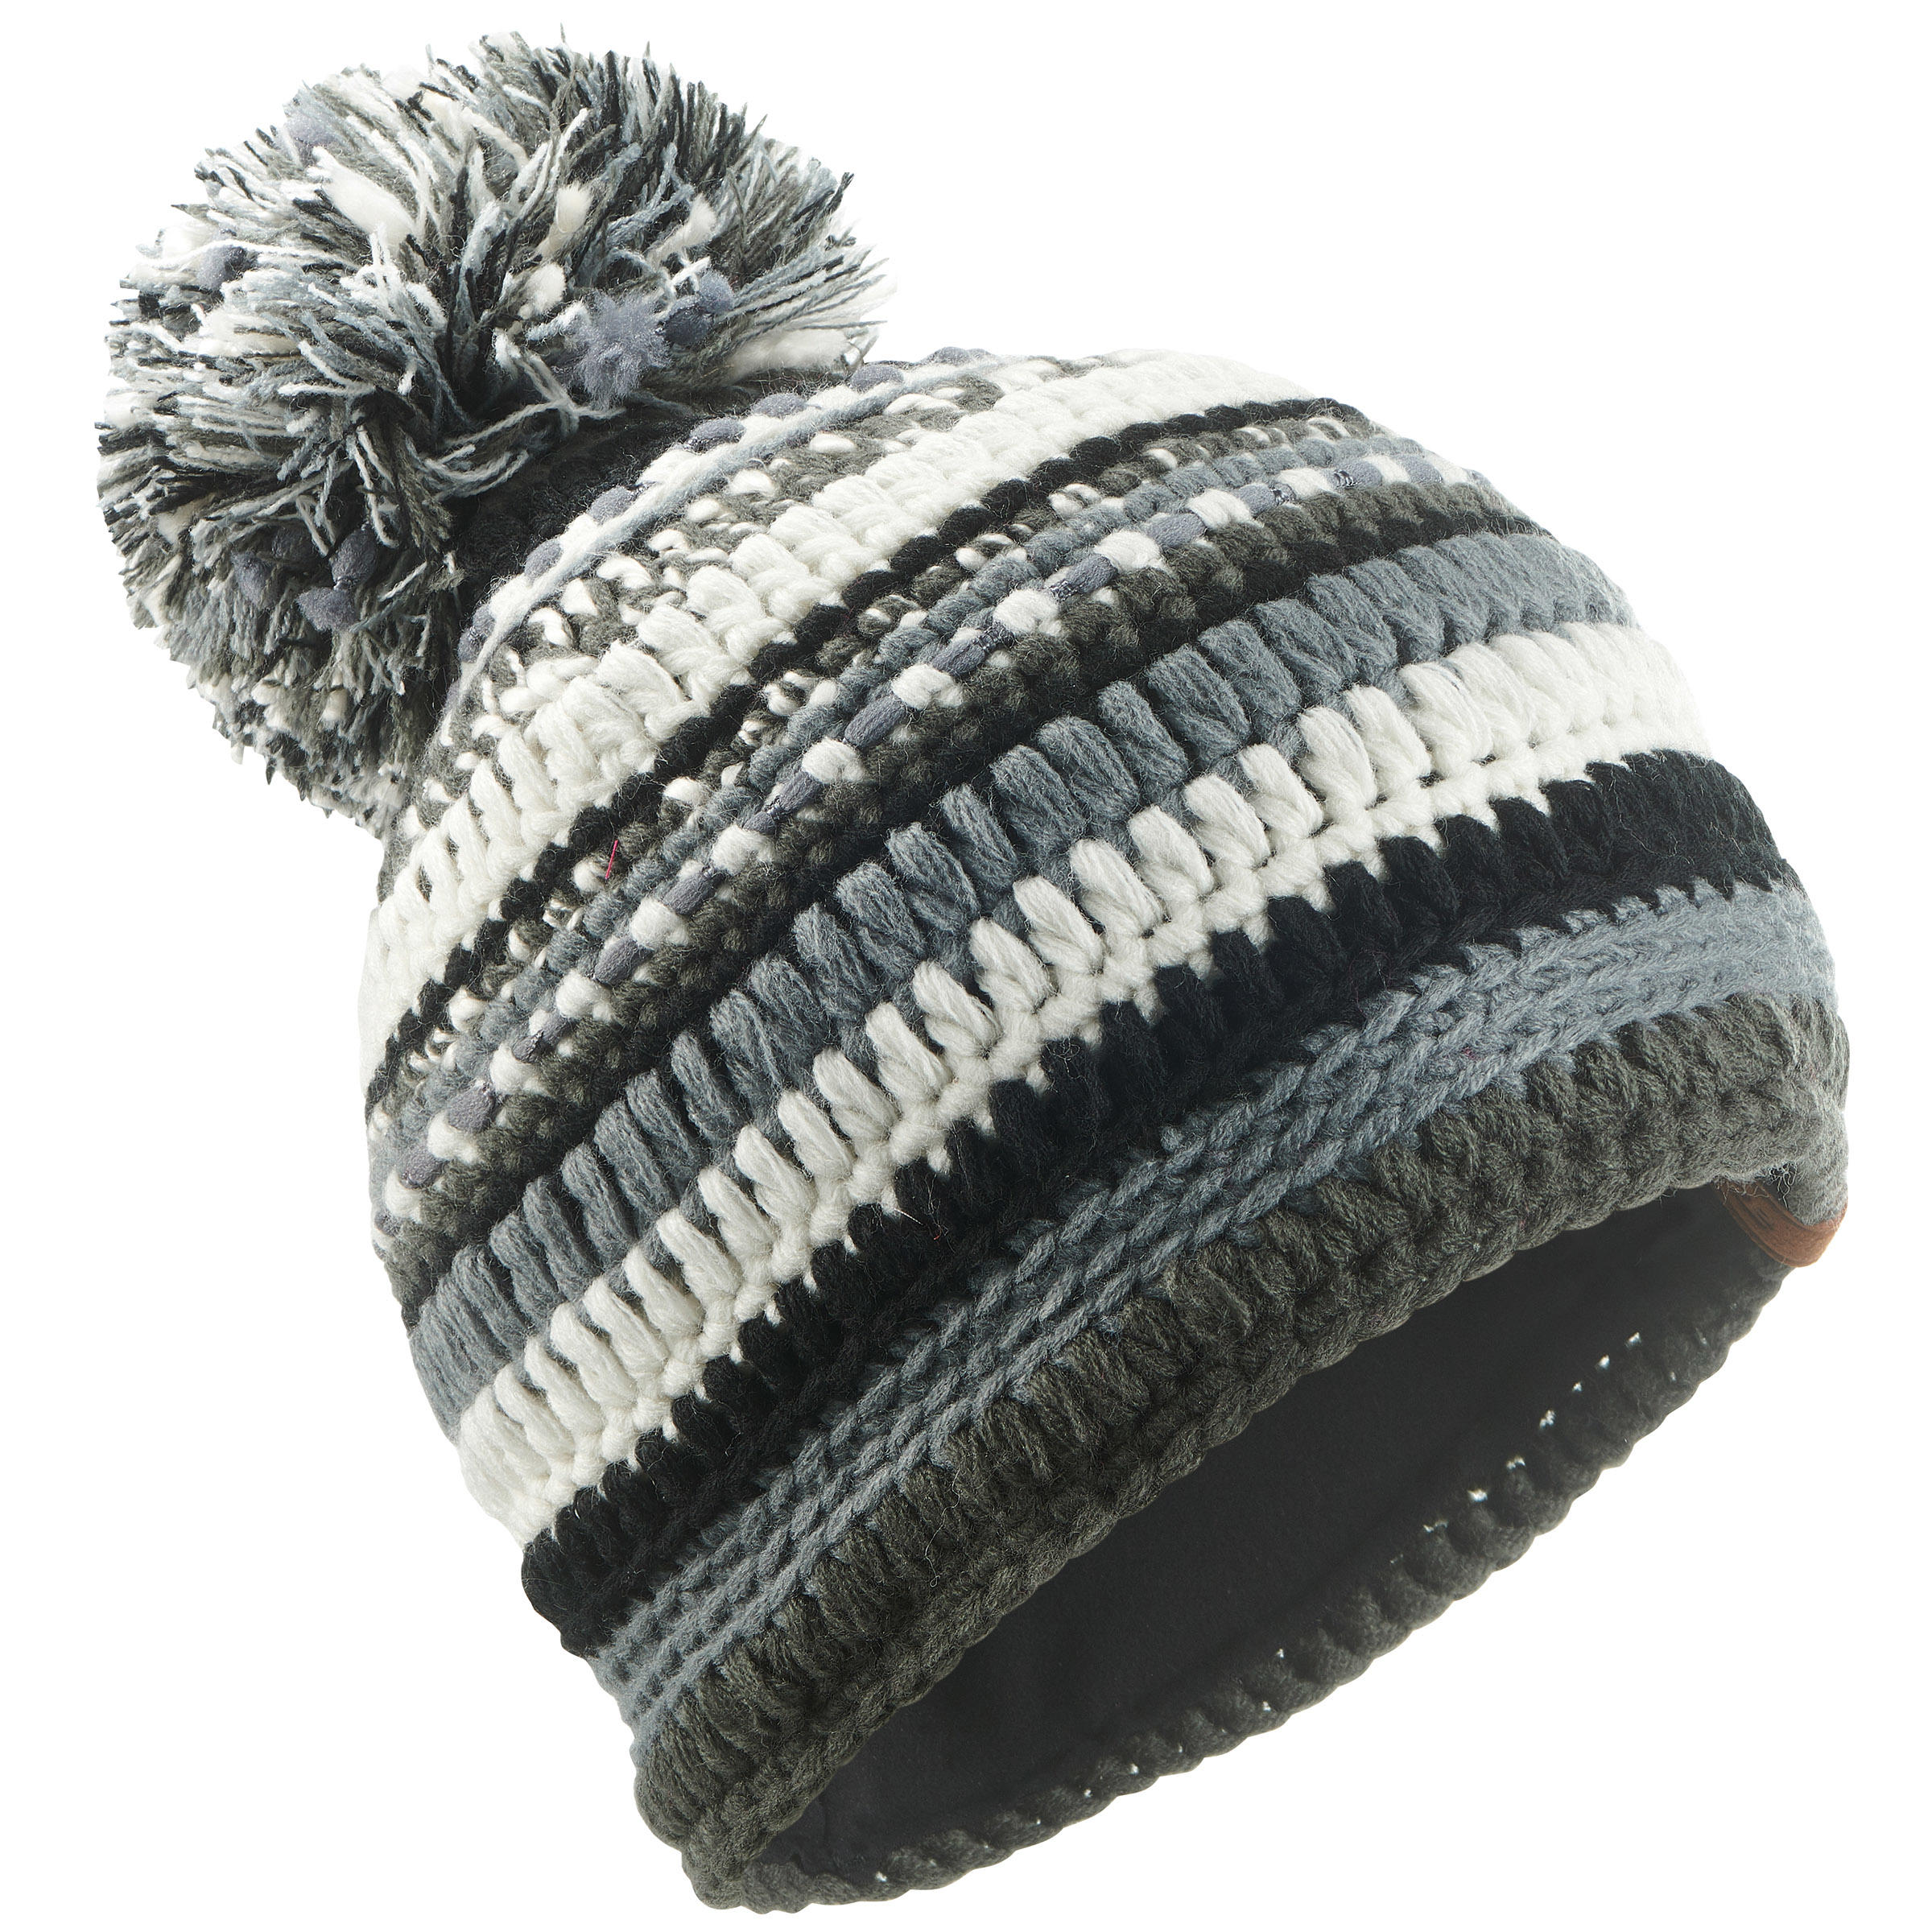 MIXYARN ADULT SKIING HAT BLACK GREY WHITE